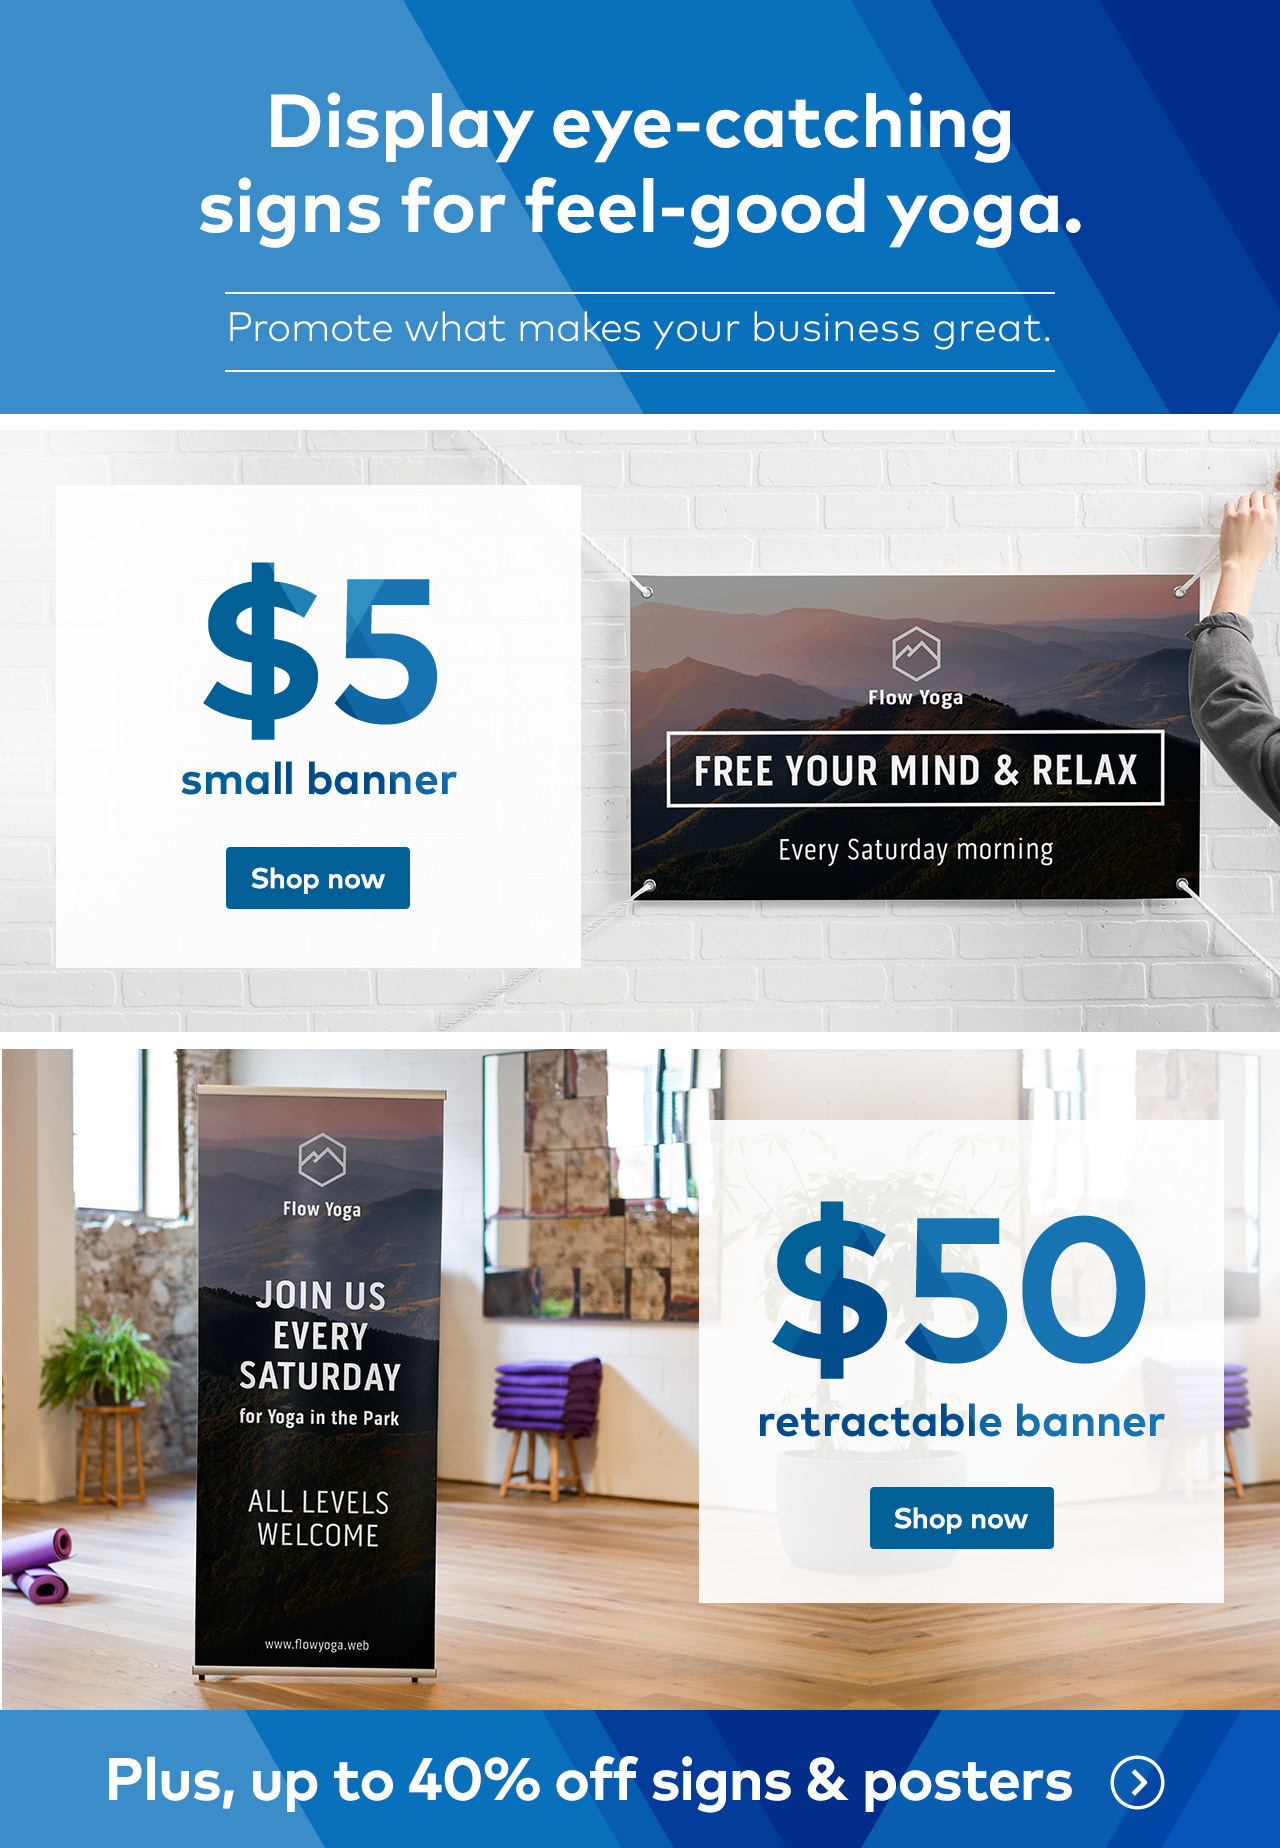 Promote what makes your business great